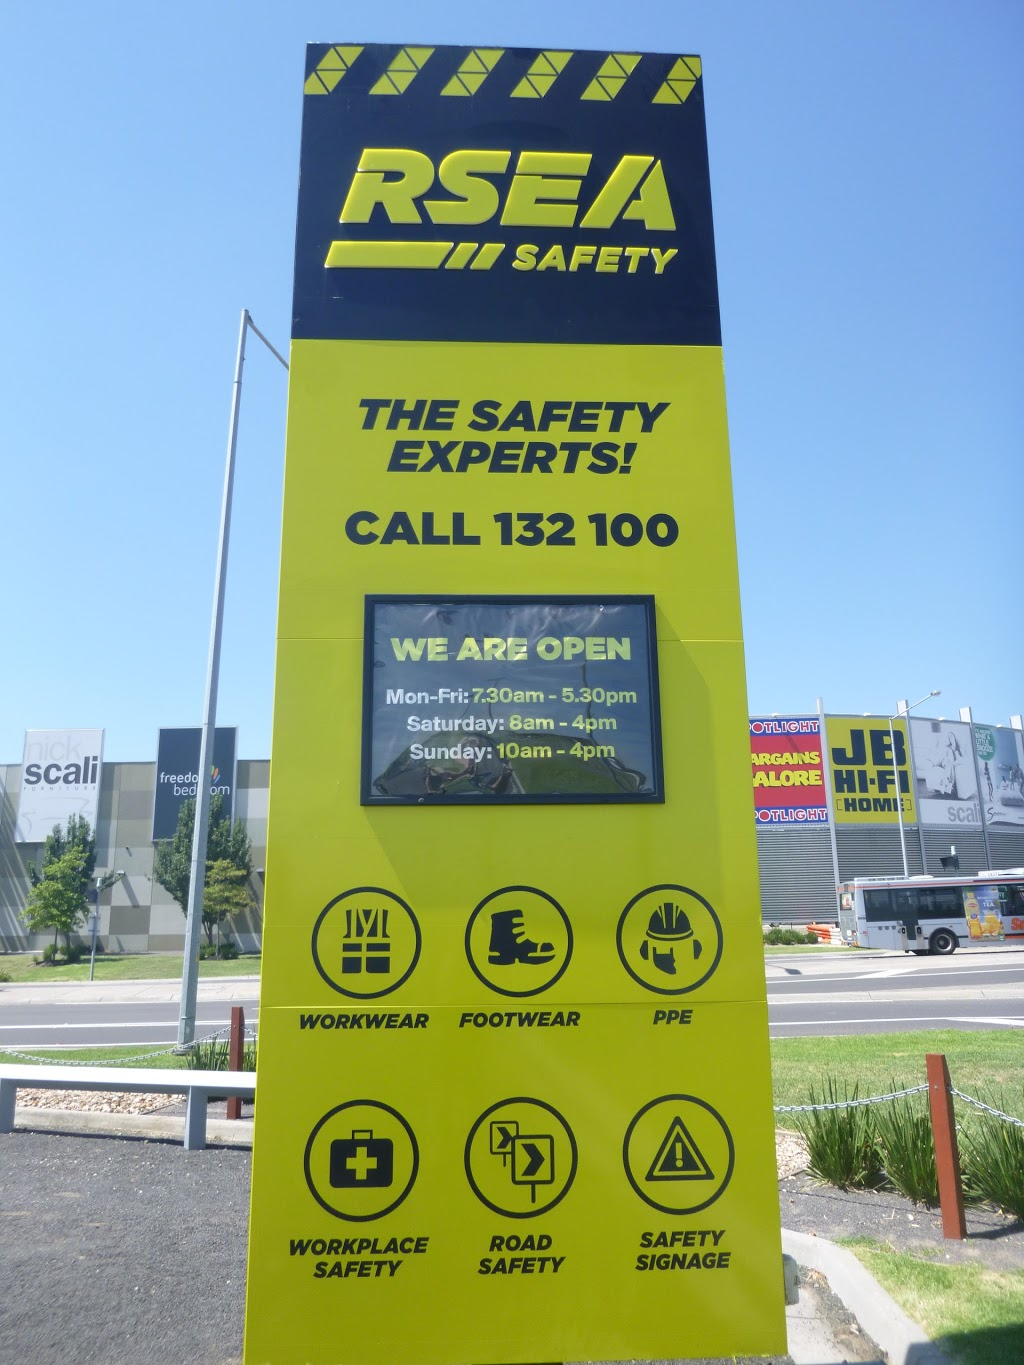 26a6a614ecb RSEA Safety - Clothing store | 91 Bulla Rd, Essendon Fields VIC 3041 ...